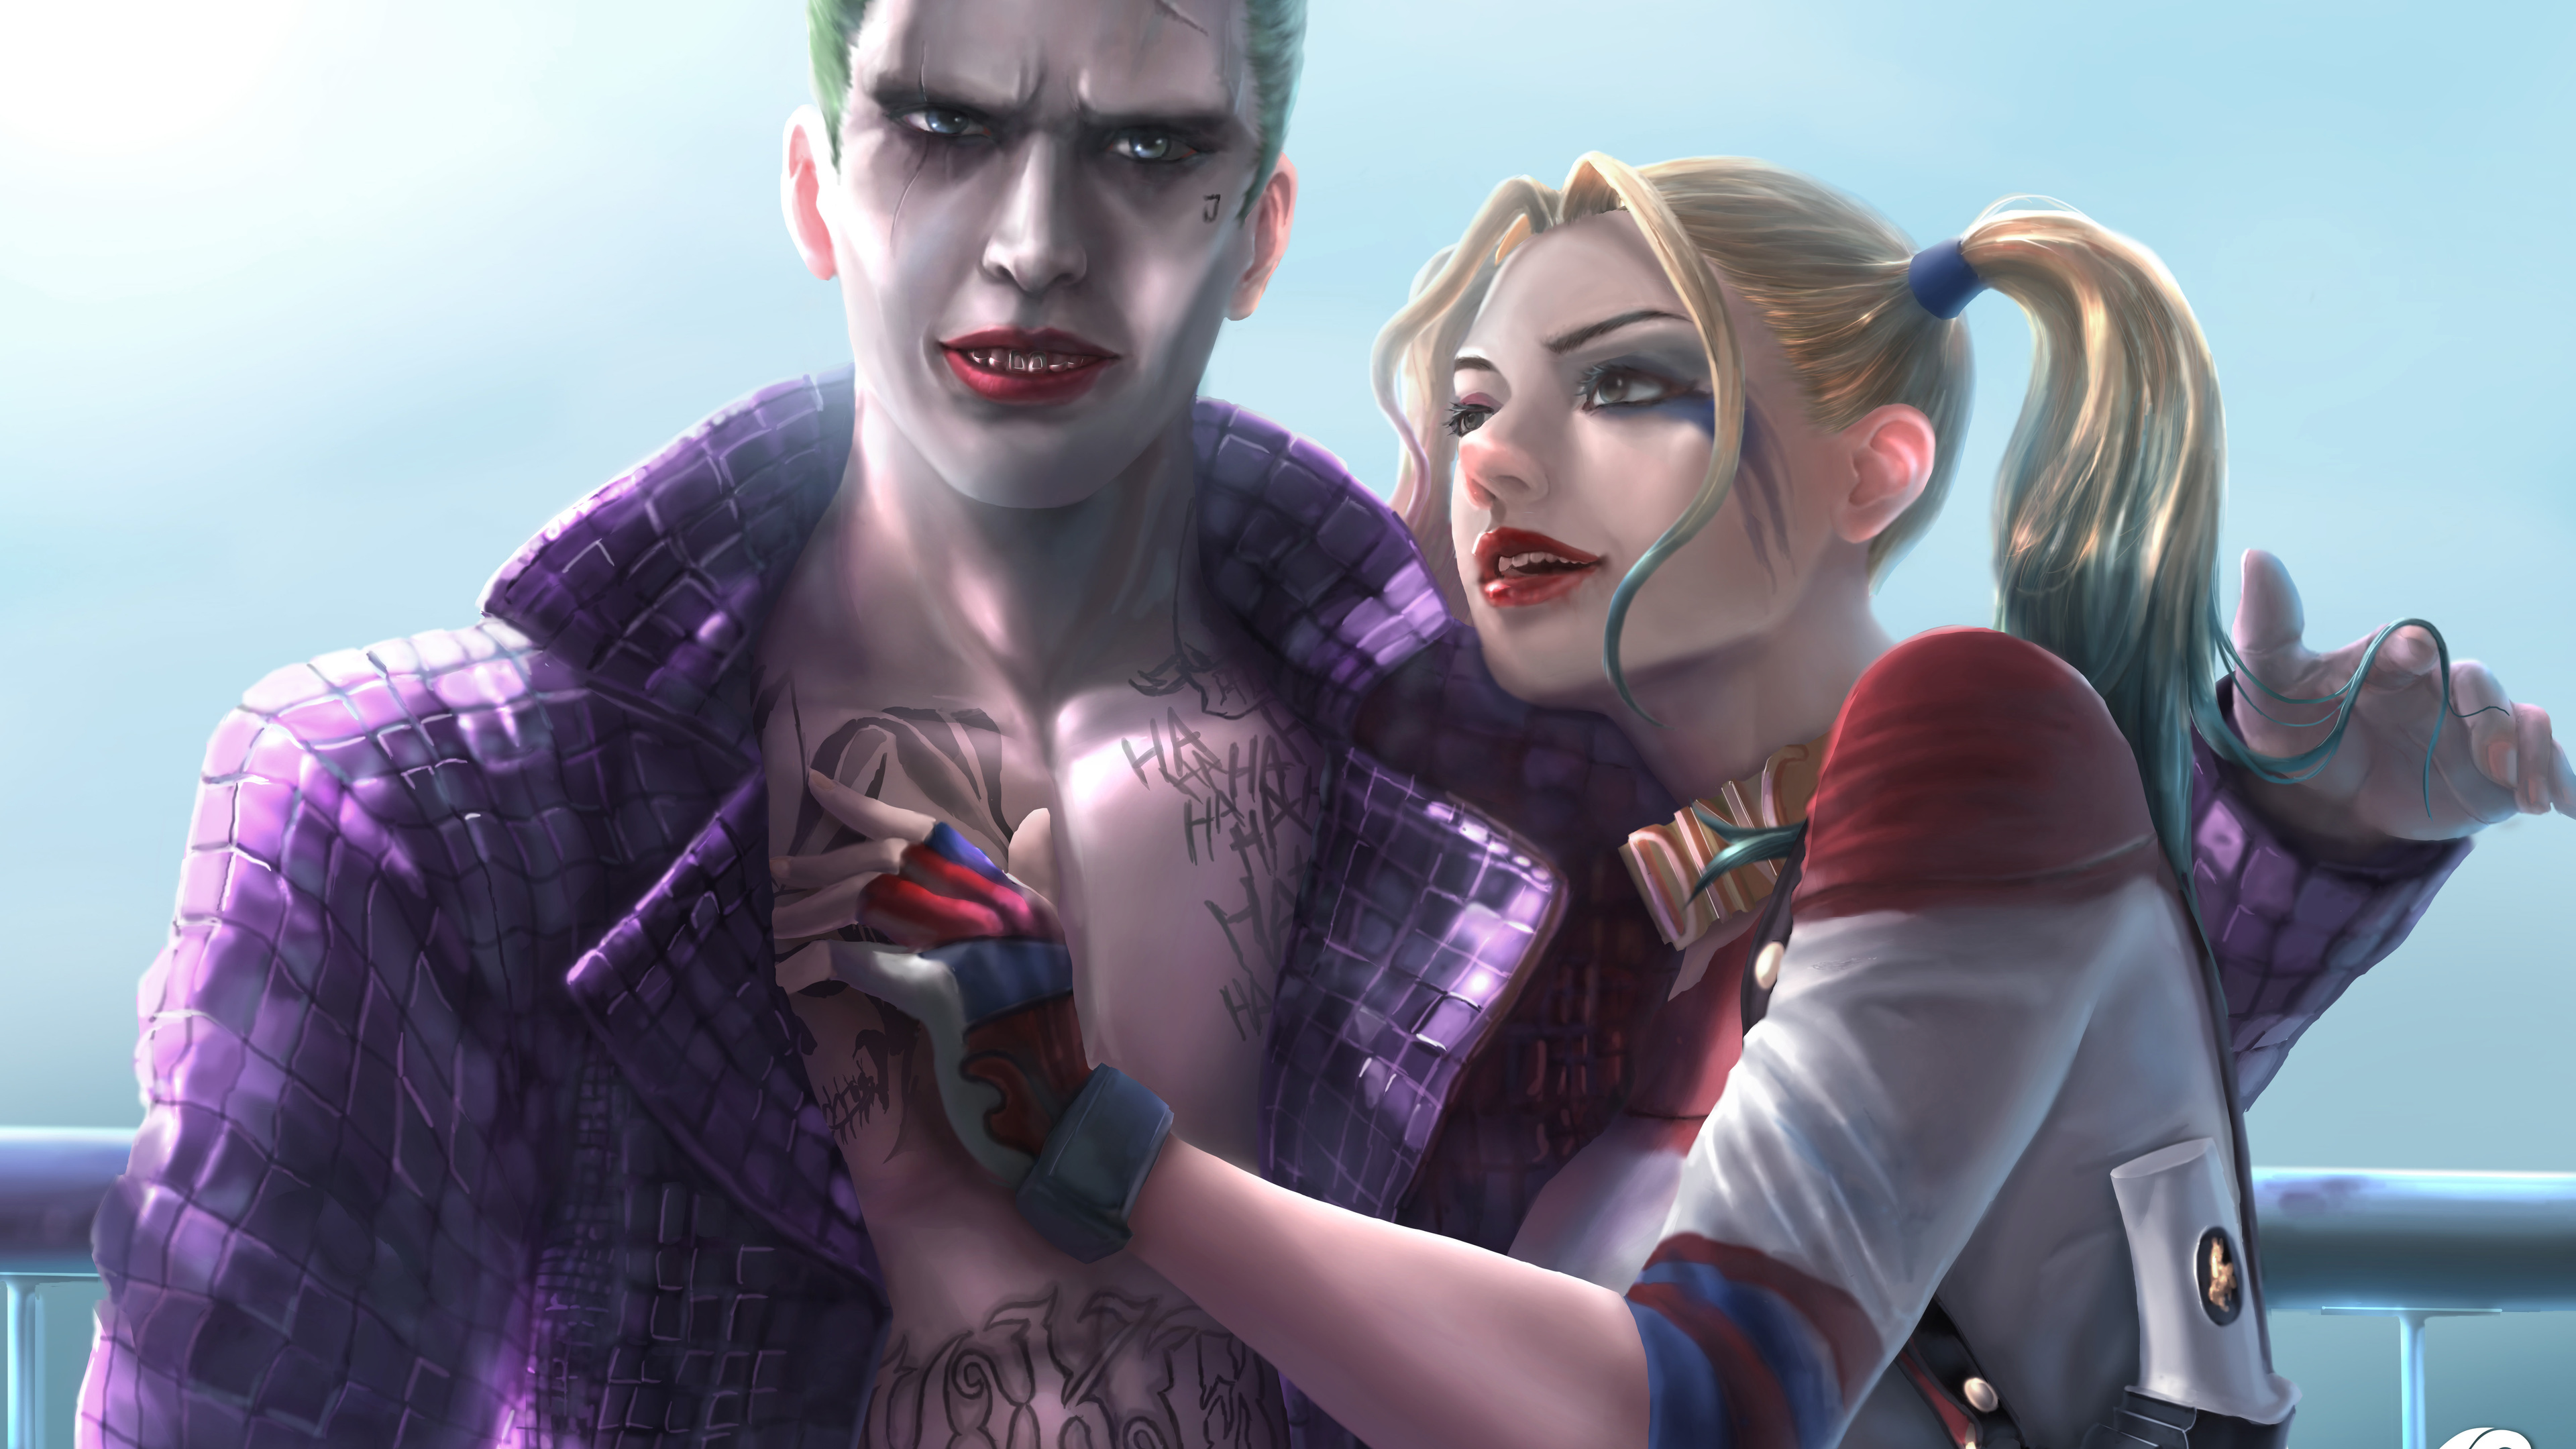 joker and harley quinn 8k artwork 1537645930 - Joker And Harley Quinn 8K Artwork - joker wallpapers, harley quinn wallpapers, digital art wallpapers, deviantart wallpapers, artwork wallpapers, artist wallpapers, art wallpapers, 8k wallpapers